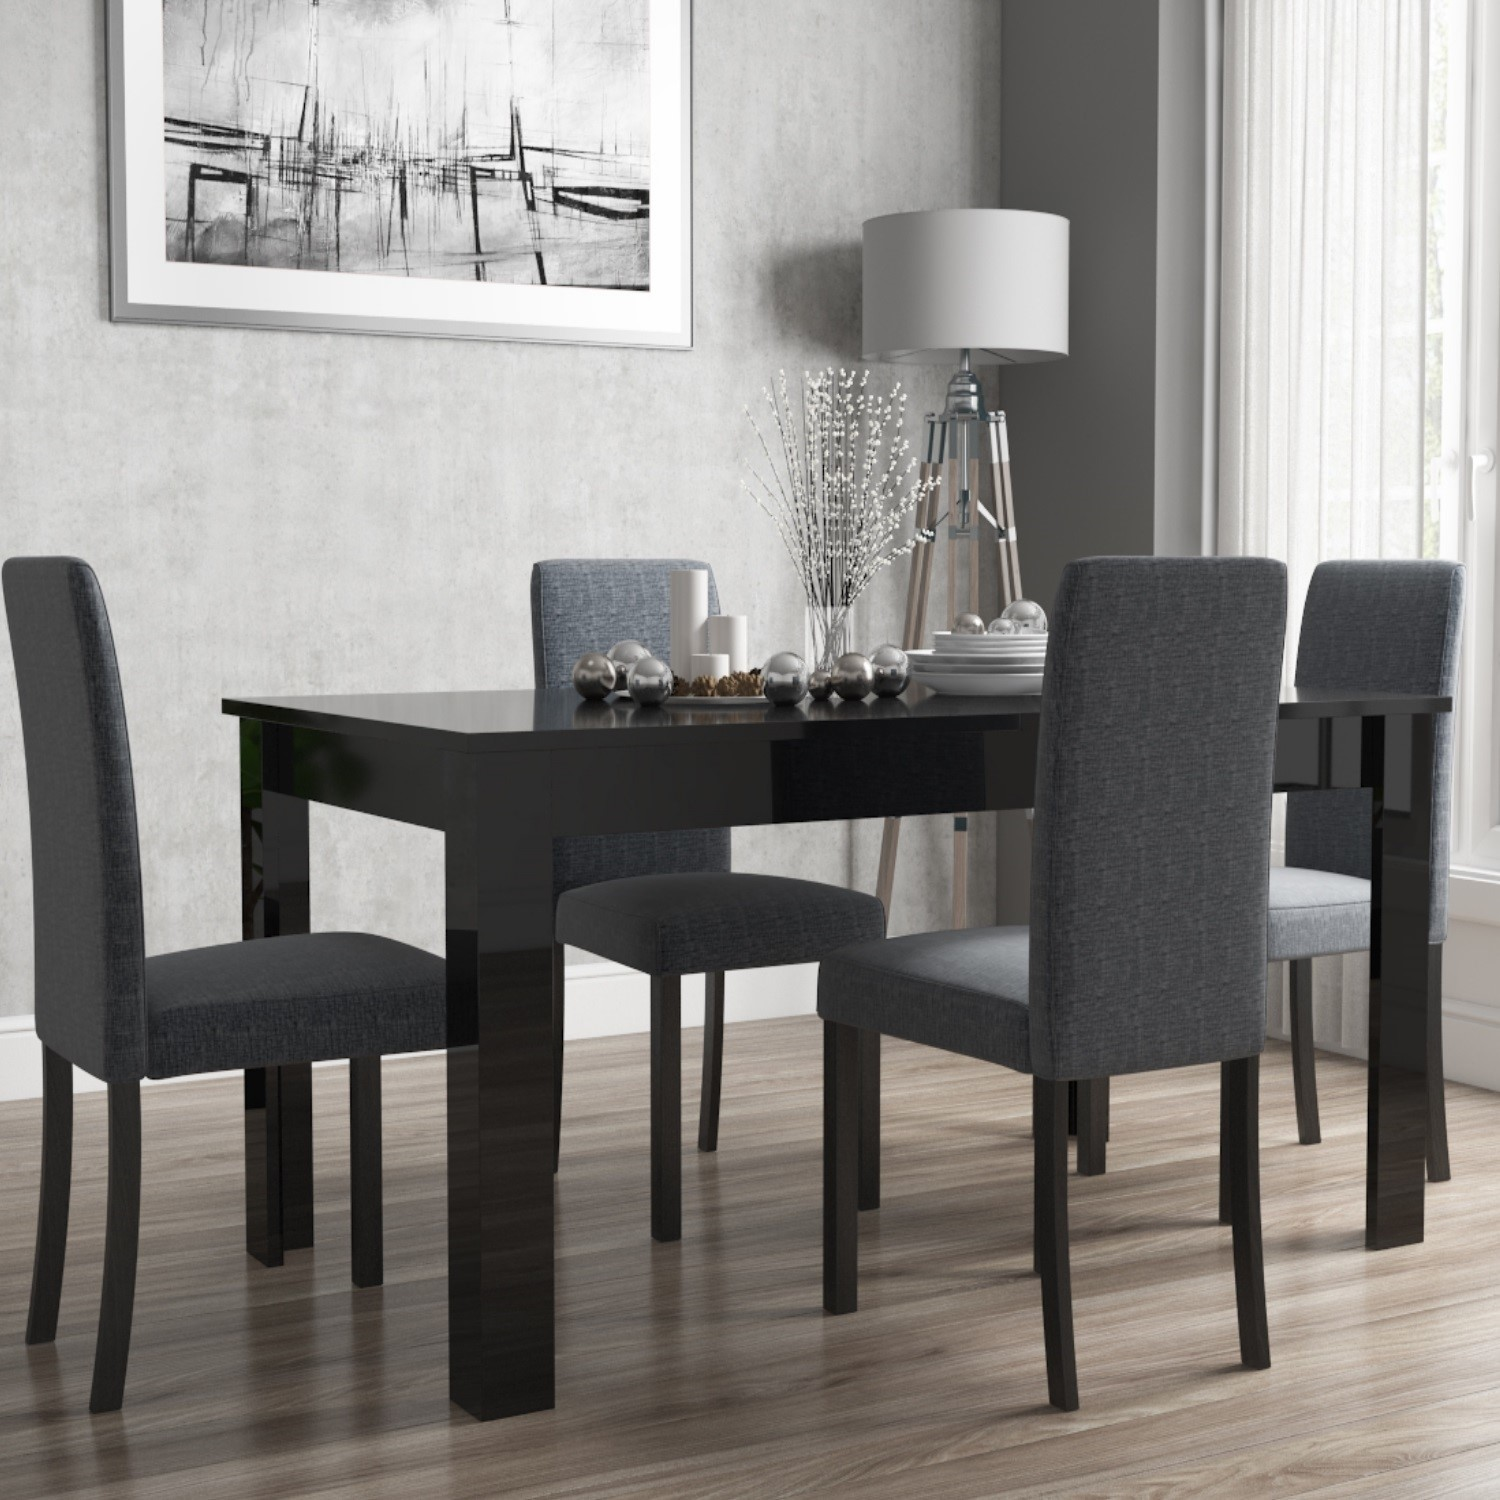 vivienne extendable black high gloss dining table 4 slate grey rh furniture123 co uk